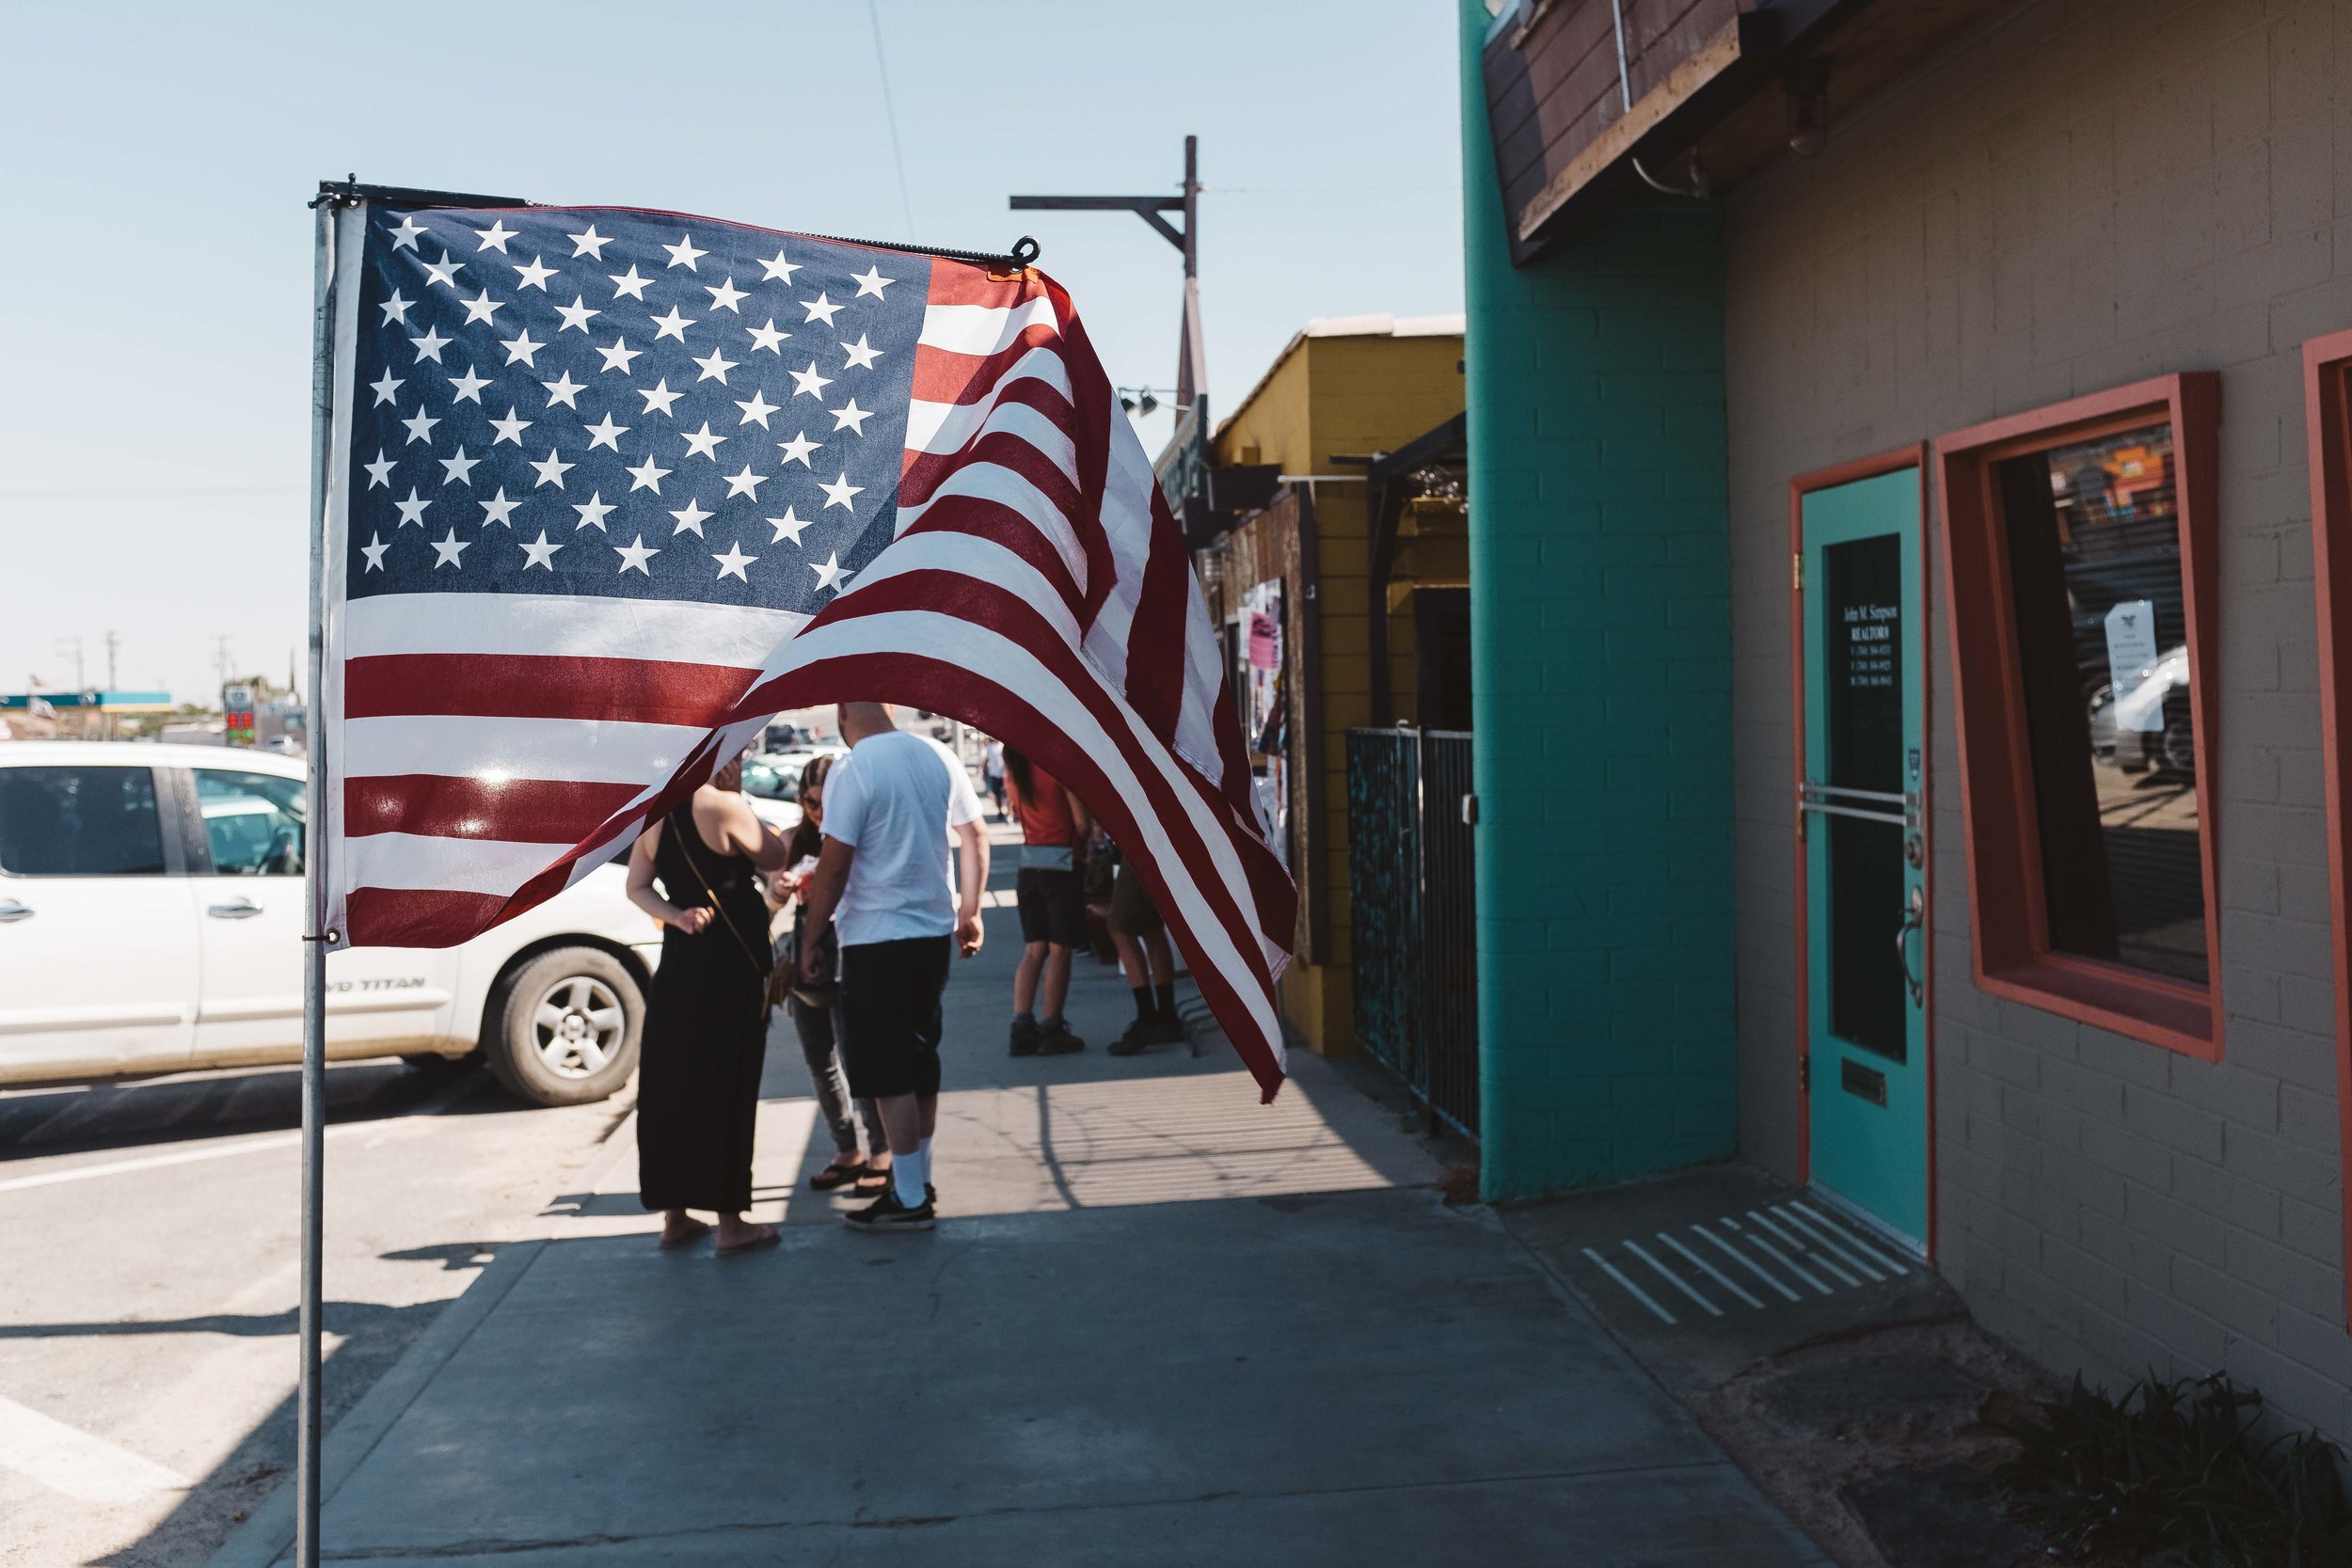 Americana James Glacier Photography-49.jpg